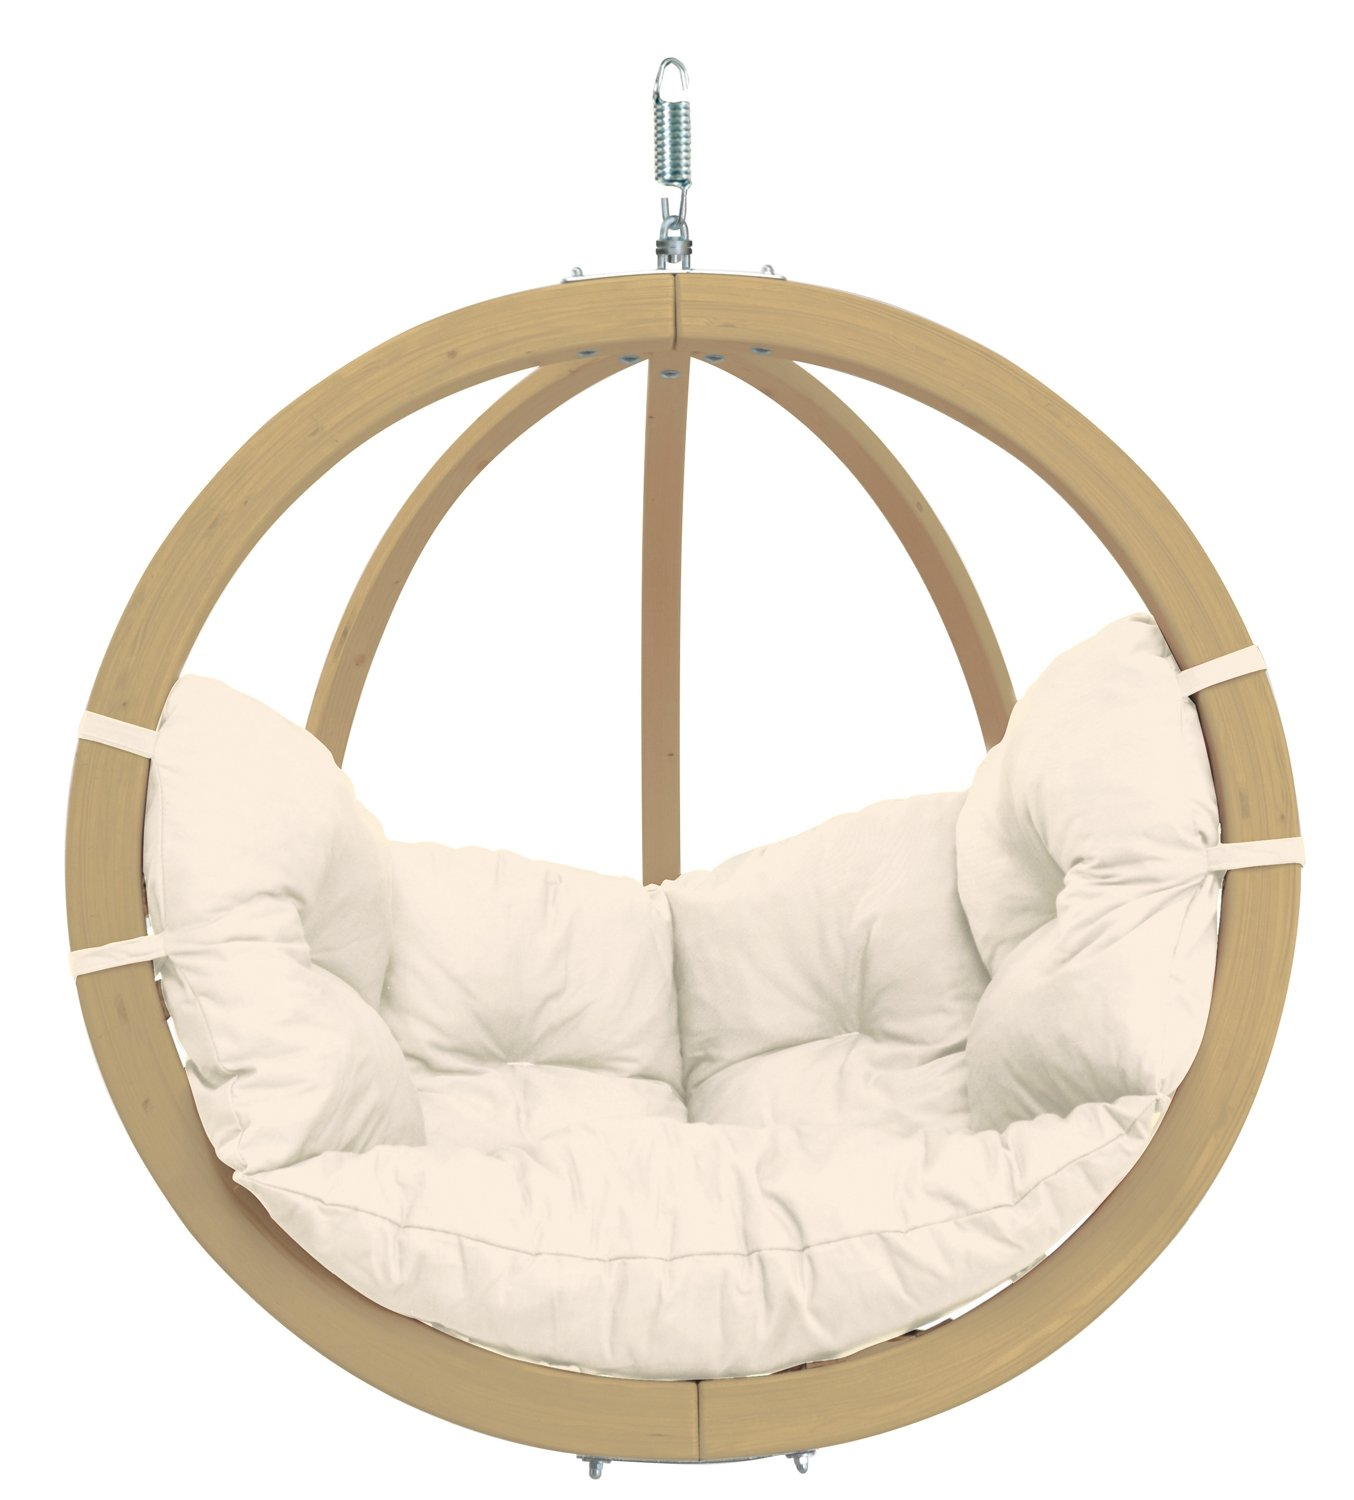 Hang Stoel Tuin.Hanging Chair For The Garden Natura Webshop Swimmingpools Be